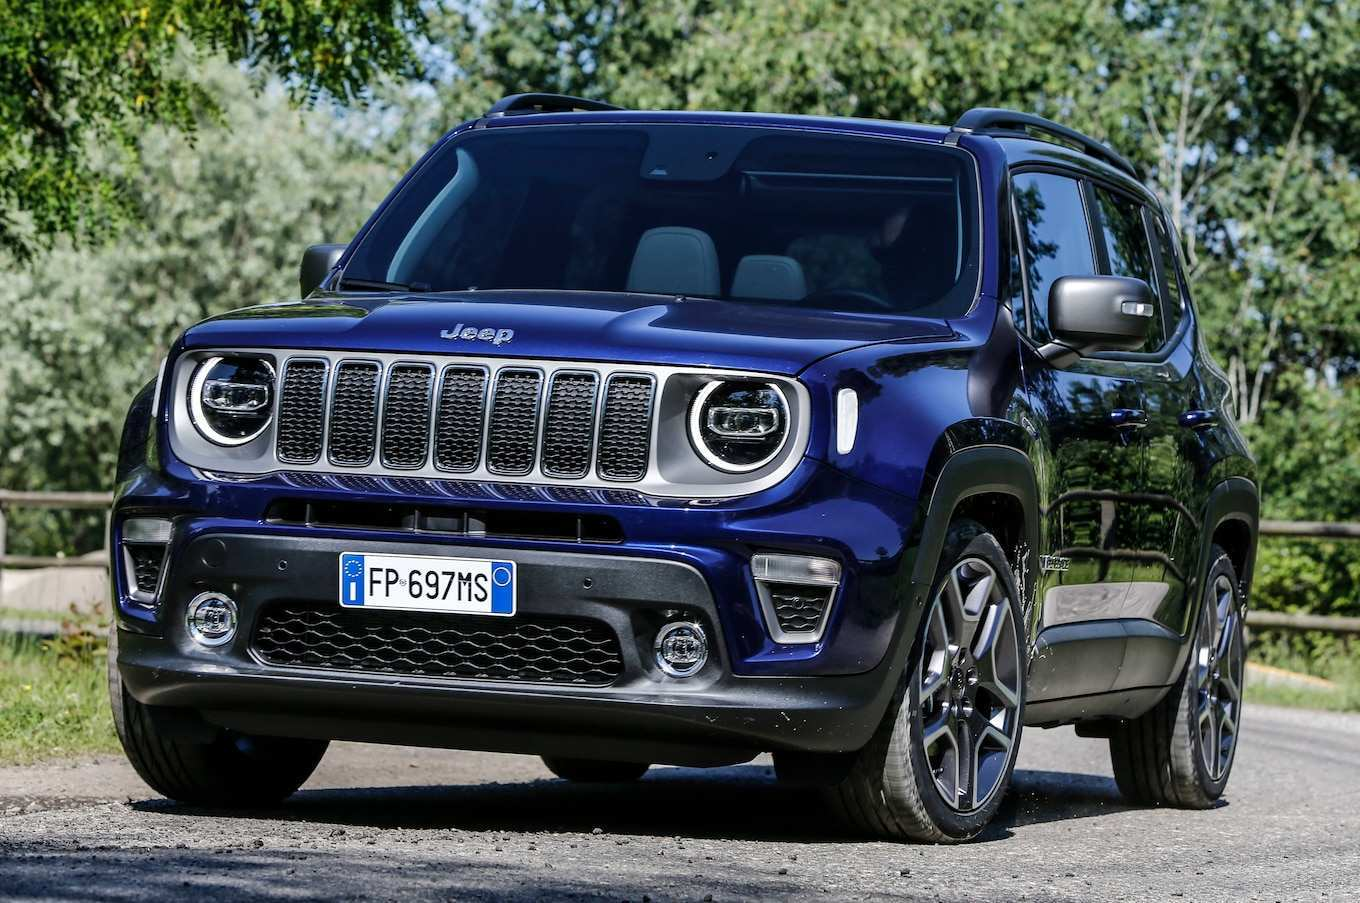 52 Great 2020 Jeep Hybrid History with 2020 Jeep Hybrid